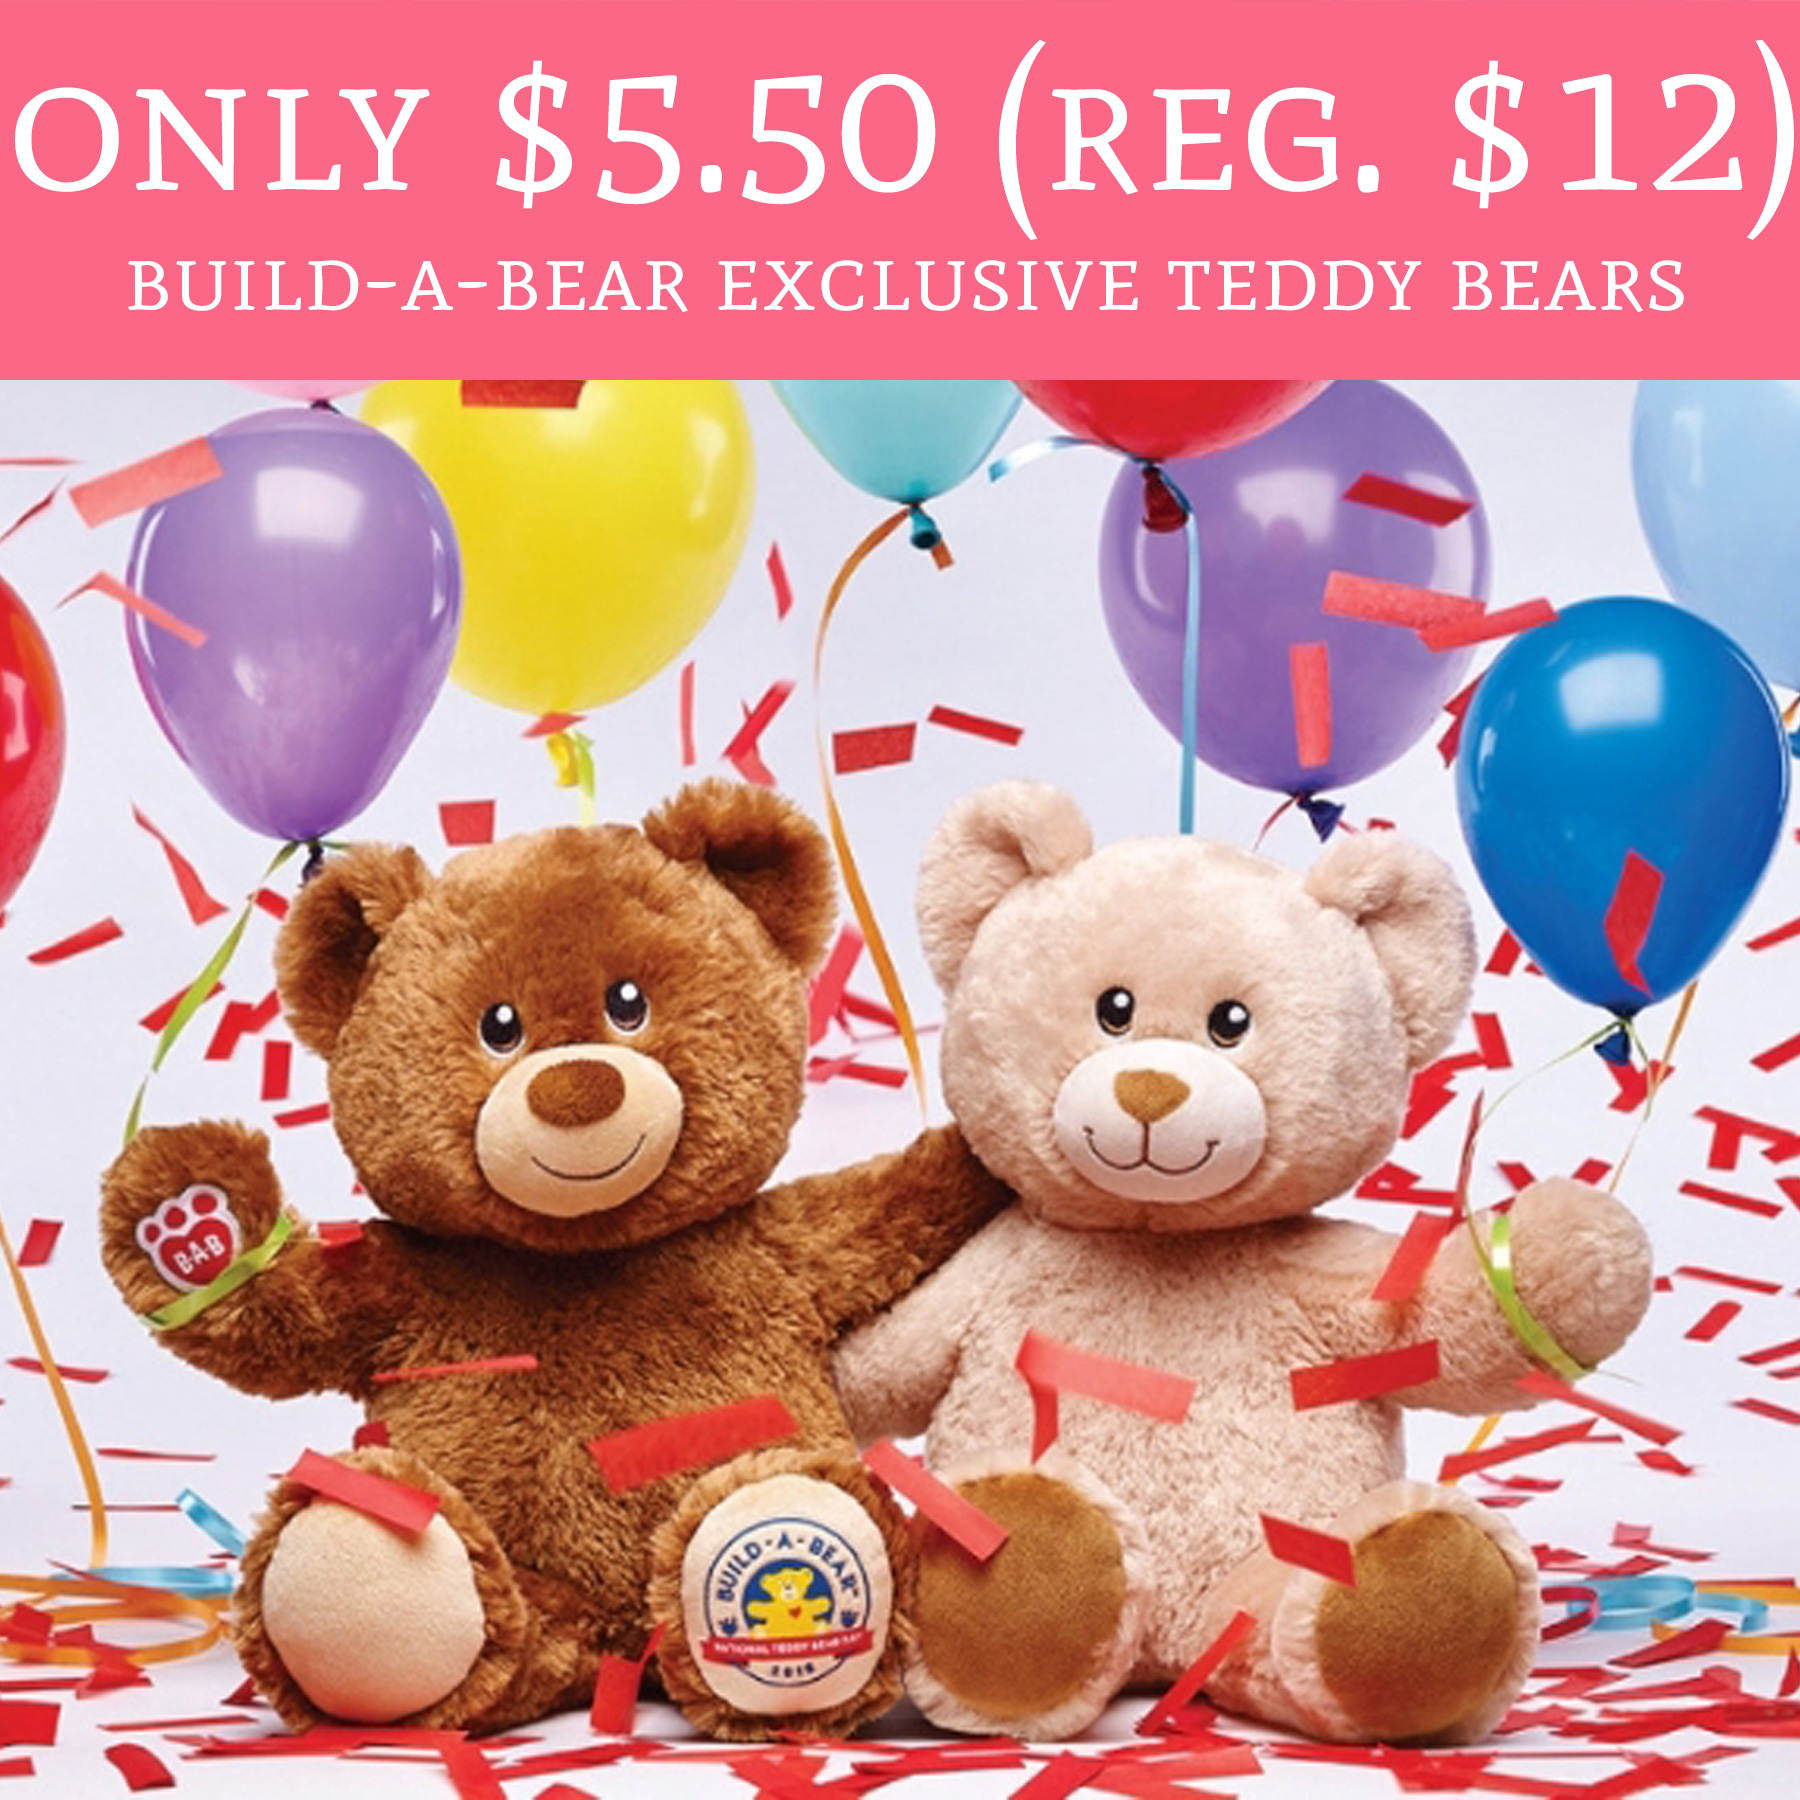 hot only regular 12 build a bear exclusive teddy bears deal hunting babe. Black Bedroom Furniture Sets. Home Design Ideas